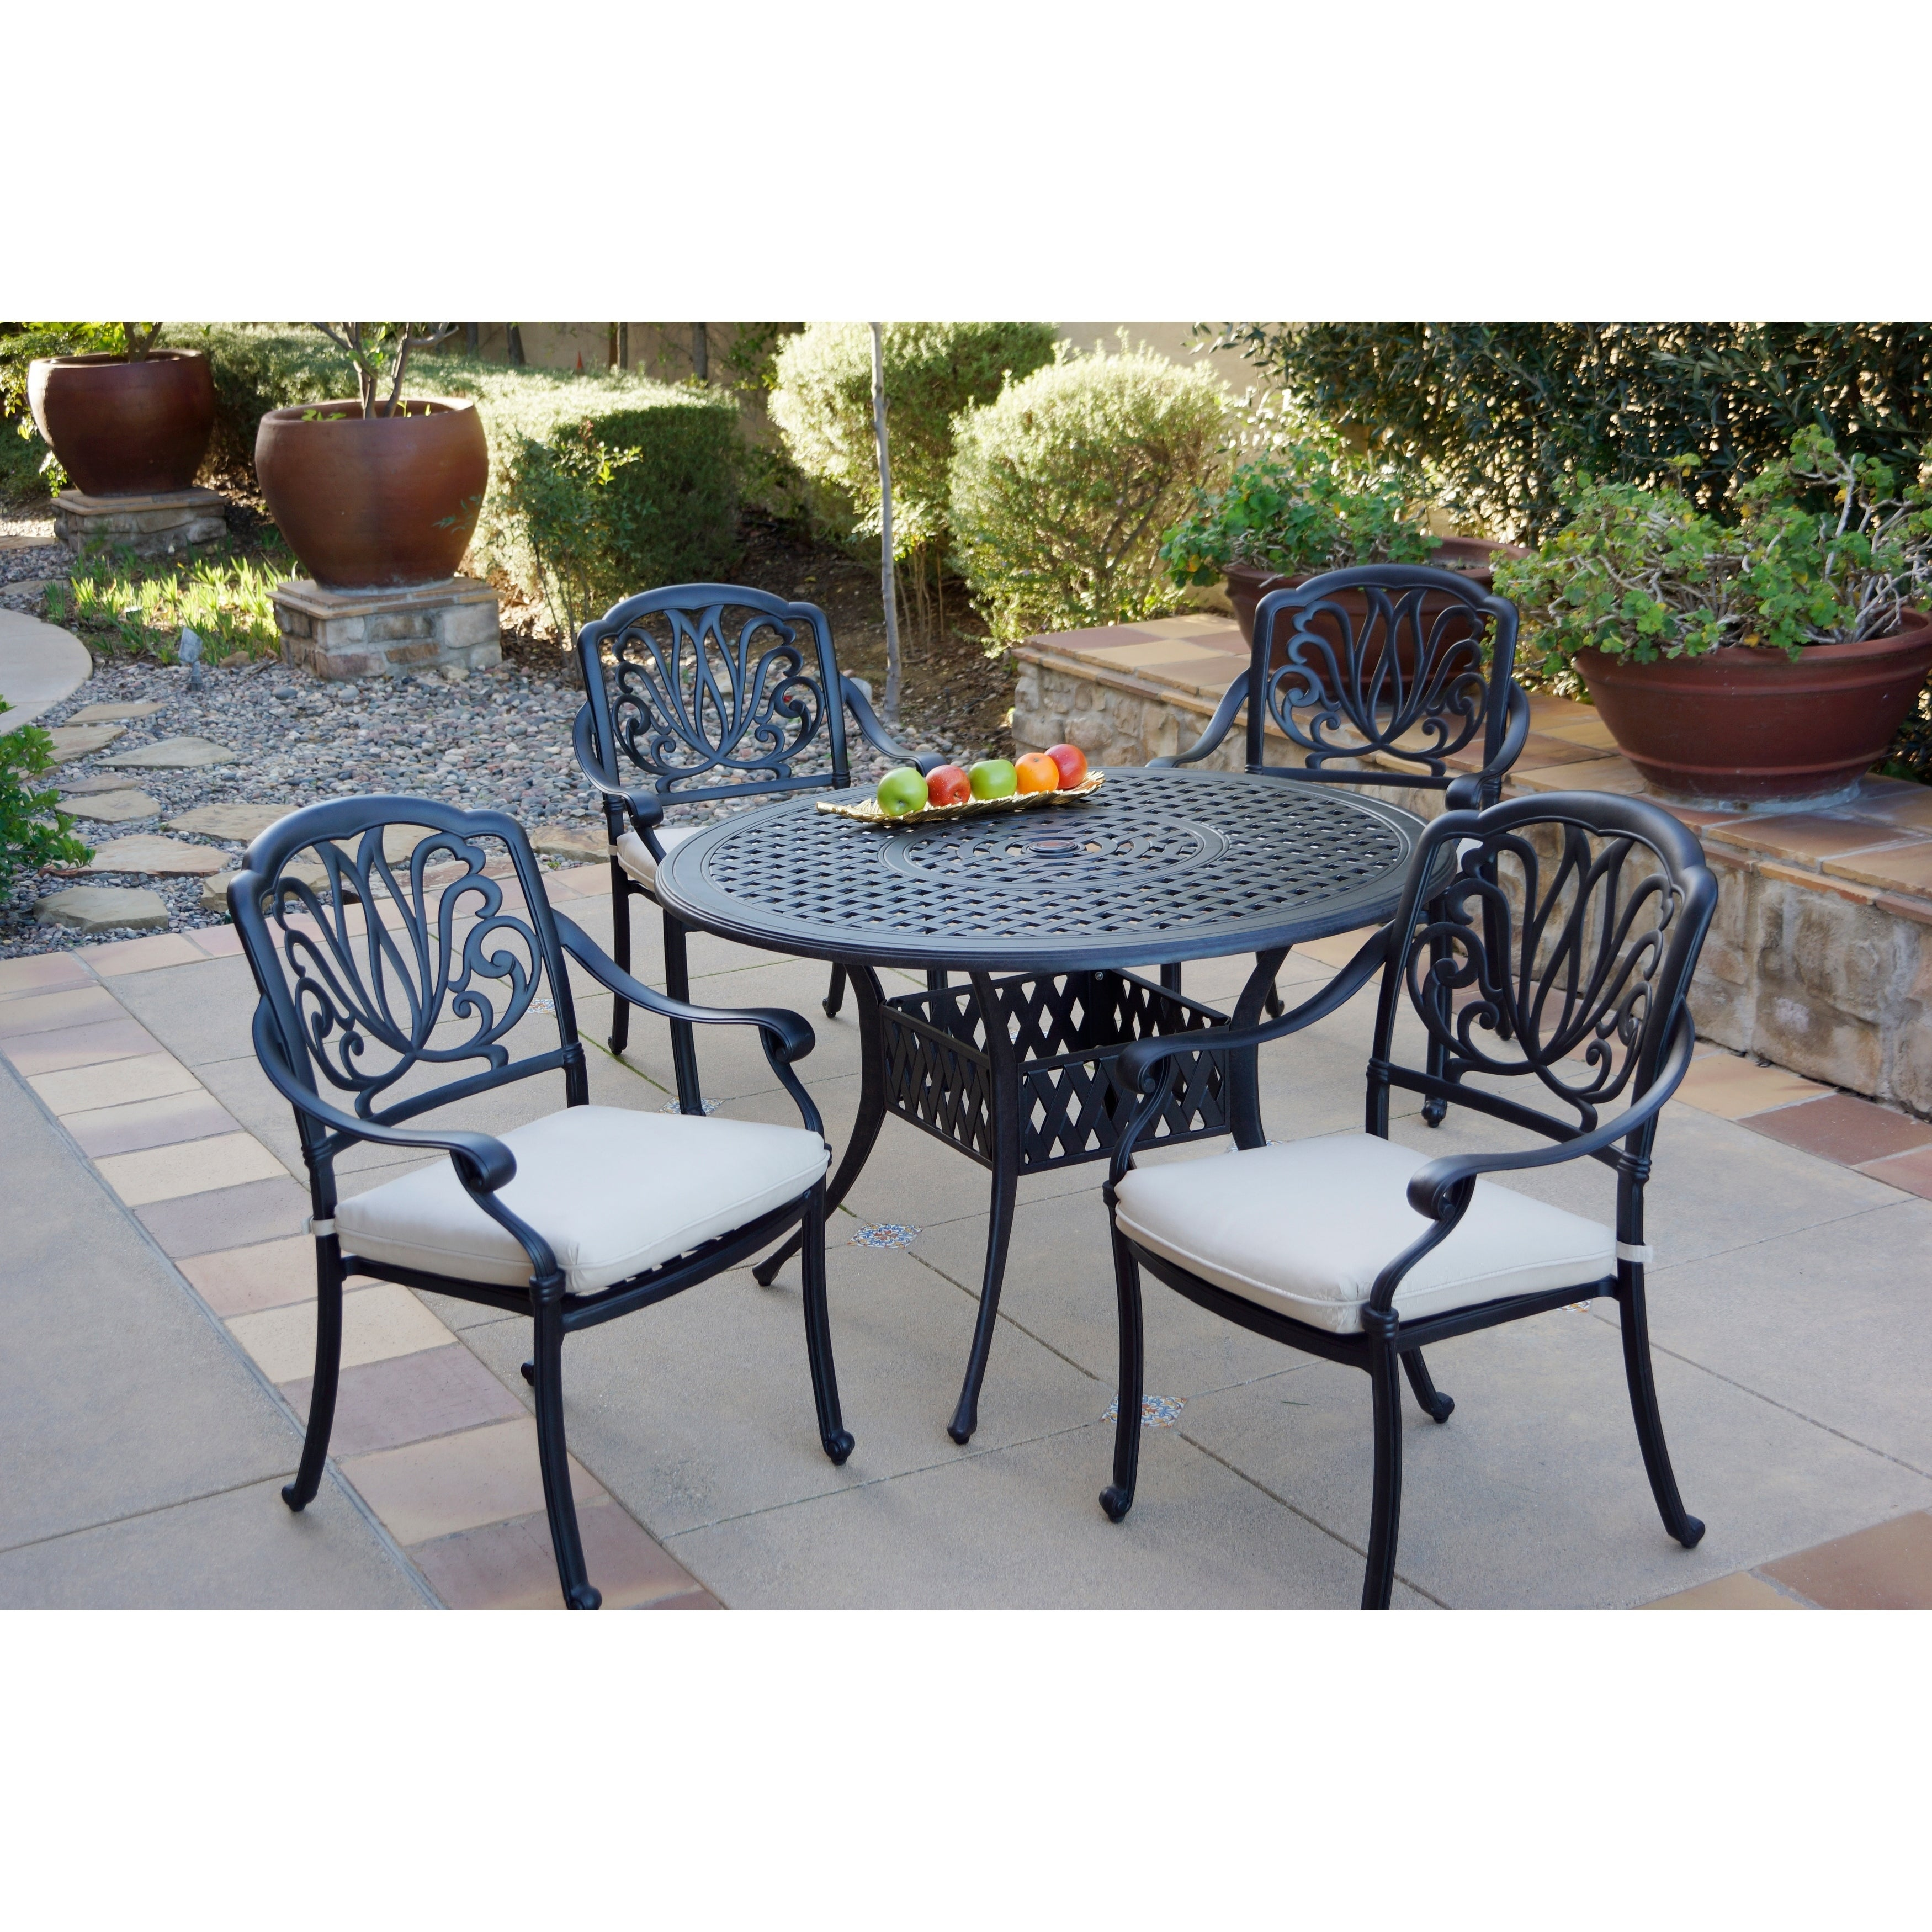 Round Table Patio Dining Sets.5 Piece Patio Dining Set 48 Inch Round Dining Table